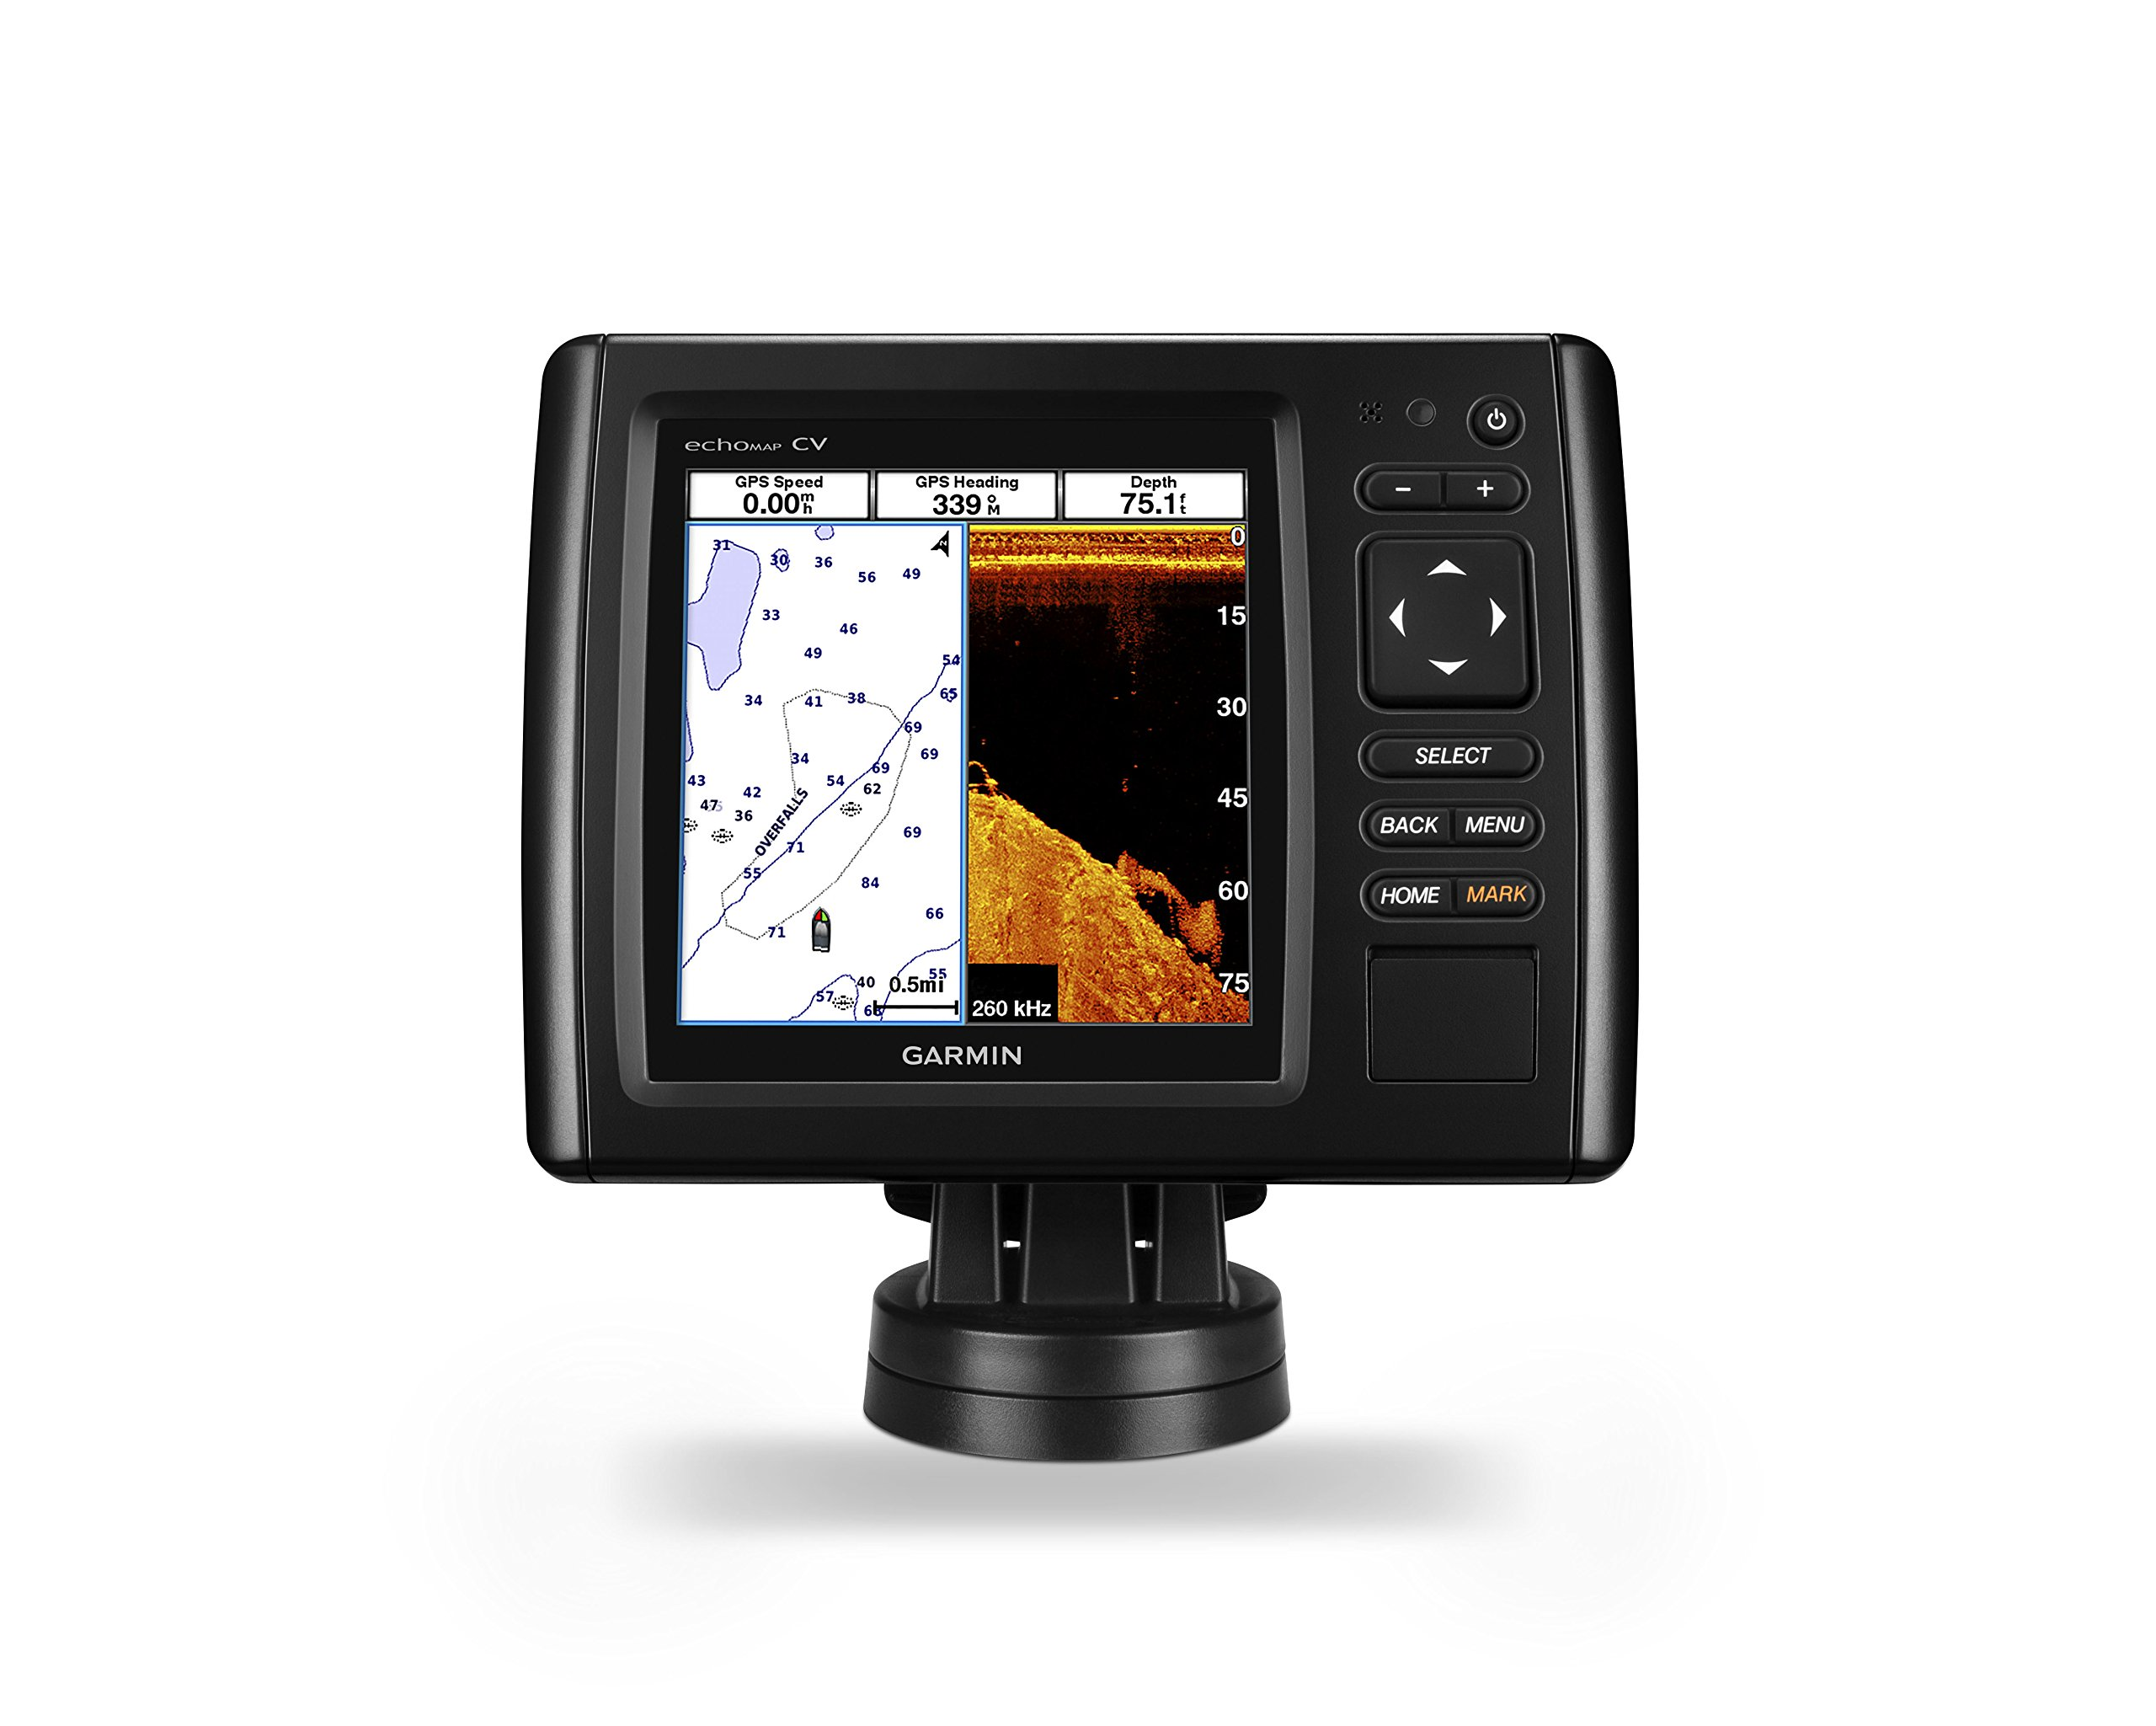 Garmin 010-01818-00 Garmin echoMAP CHIRP 55cv with transducer by Garmin